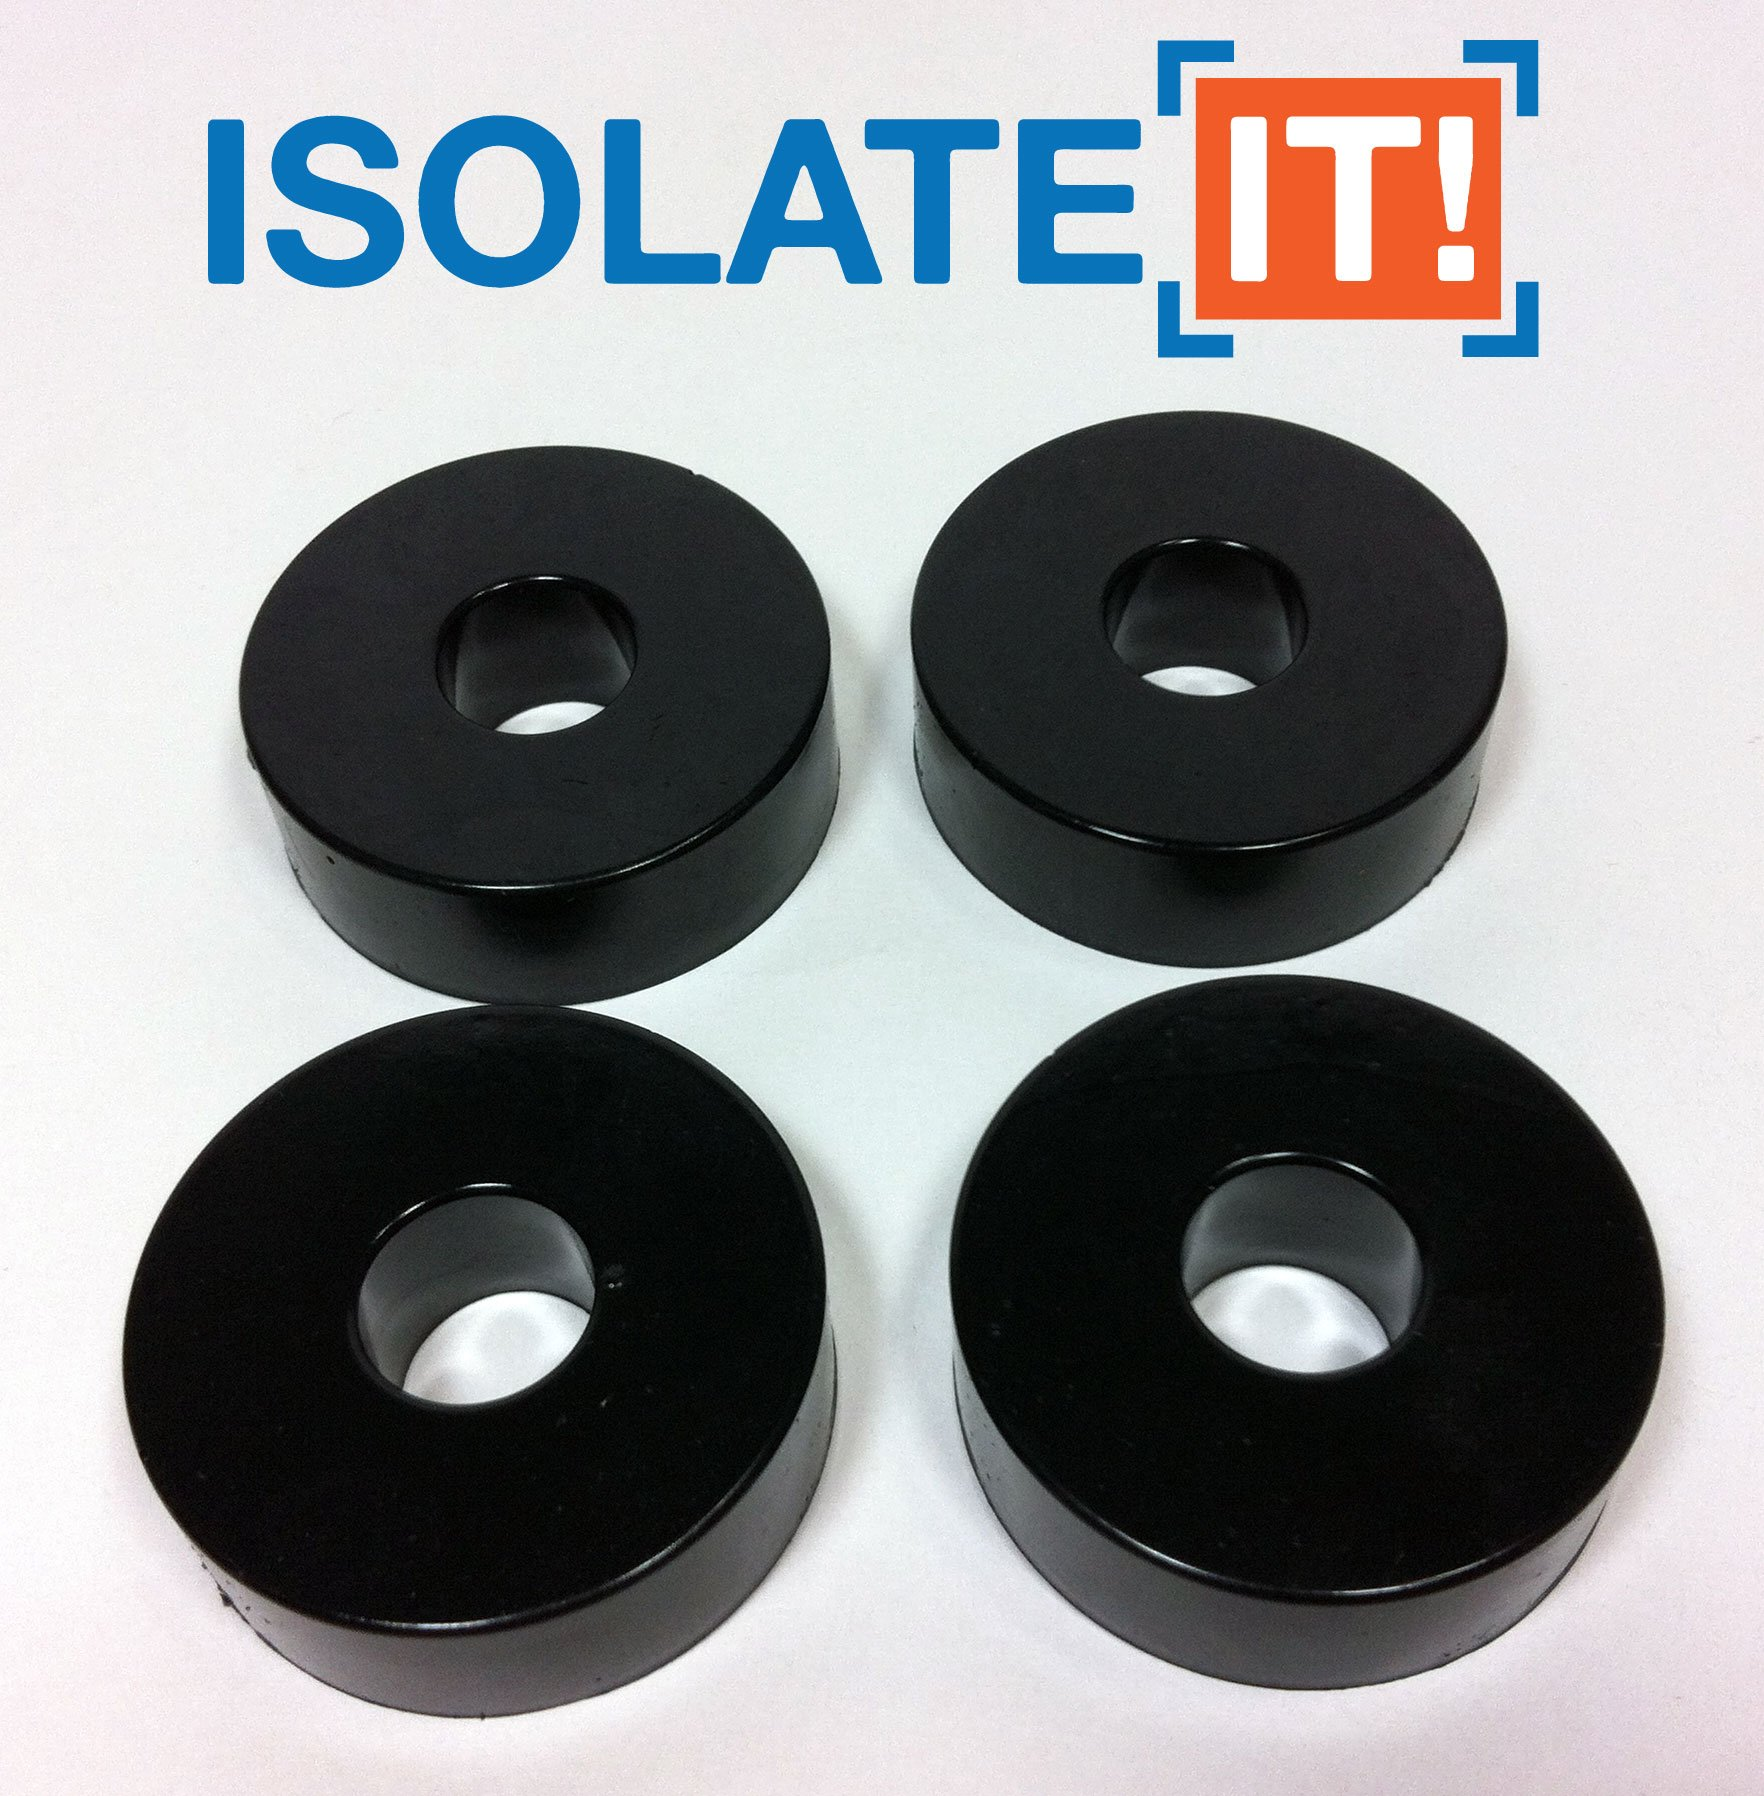 Isolate It: Sorbothane Vibration Isolation Washer 50 Duro (0.5'' ID - 1.5'' OD - 0.5'' Thick) - 4 Pack by Isolate It!